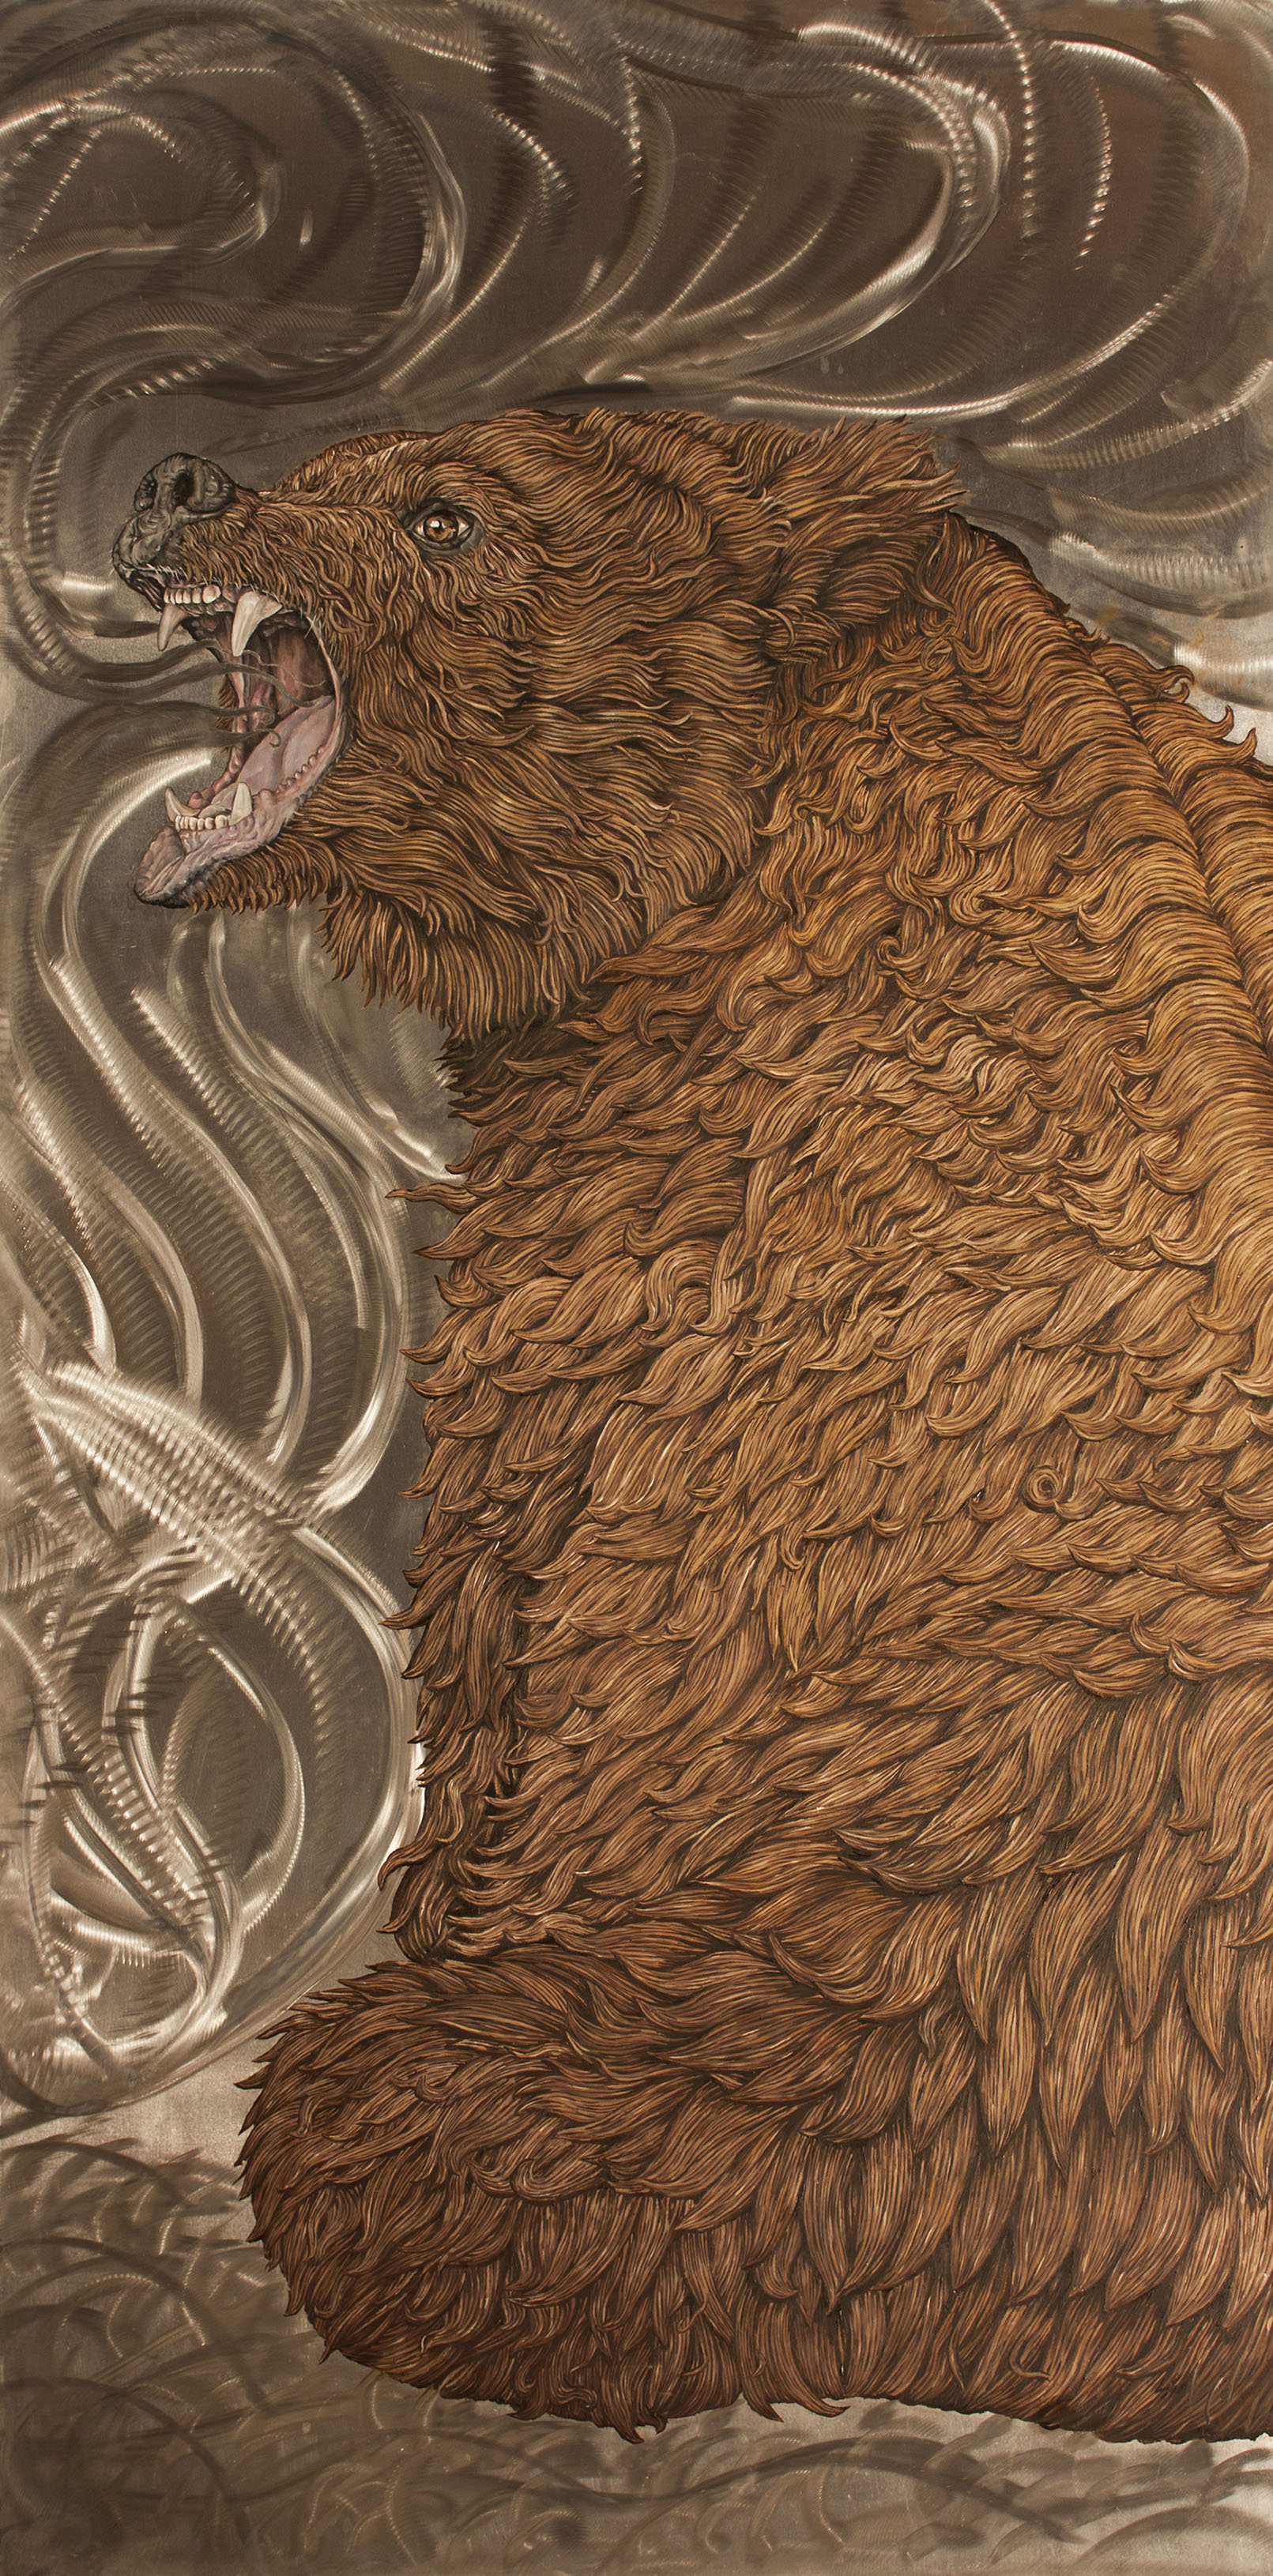 """""""Bear II"""" by James Russell May, Oil on aluminum, 48x24in, $5500"""